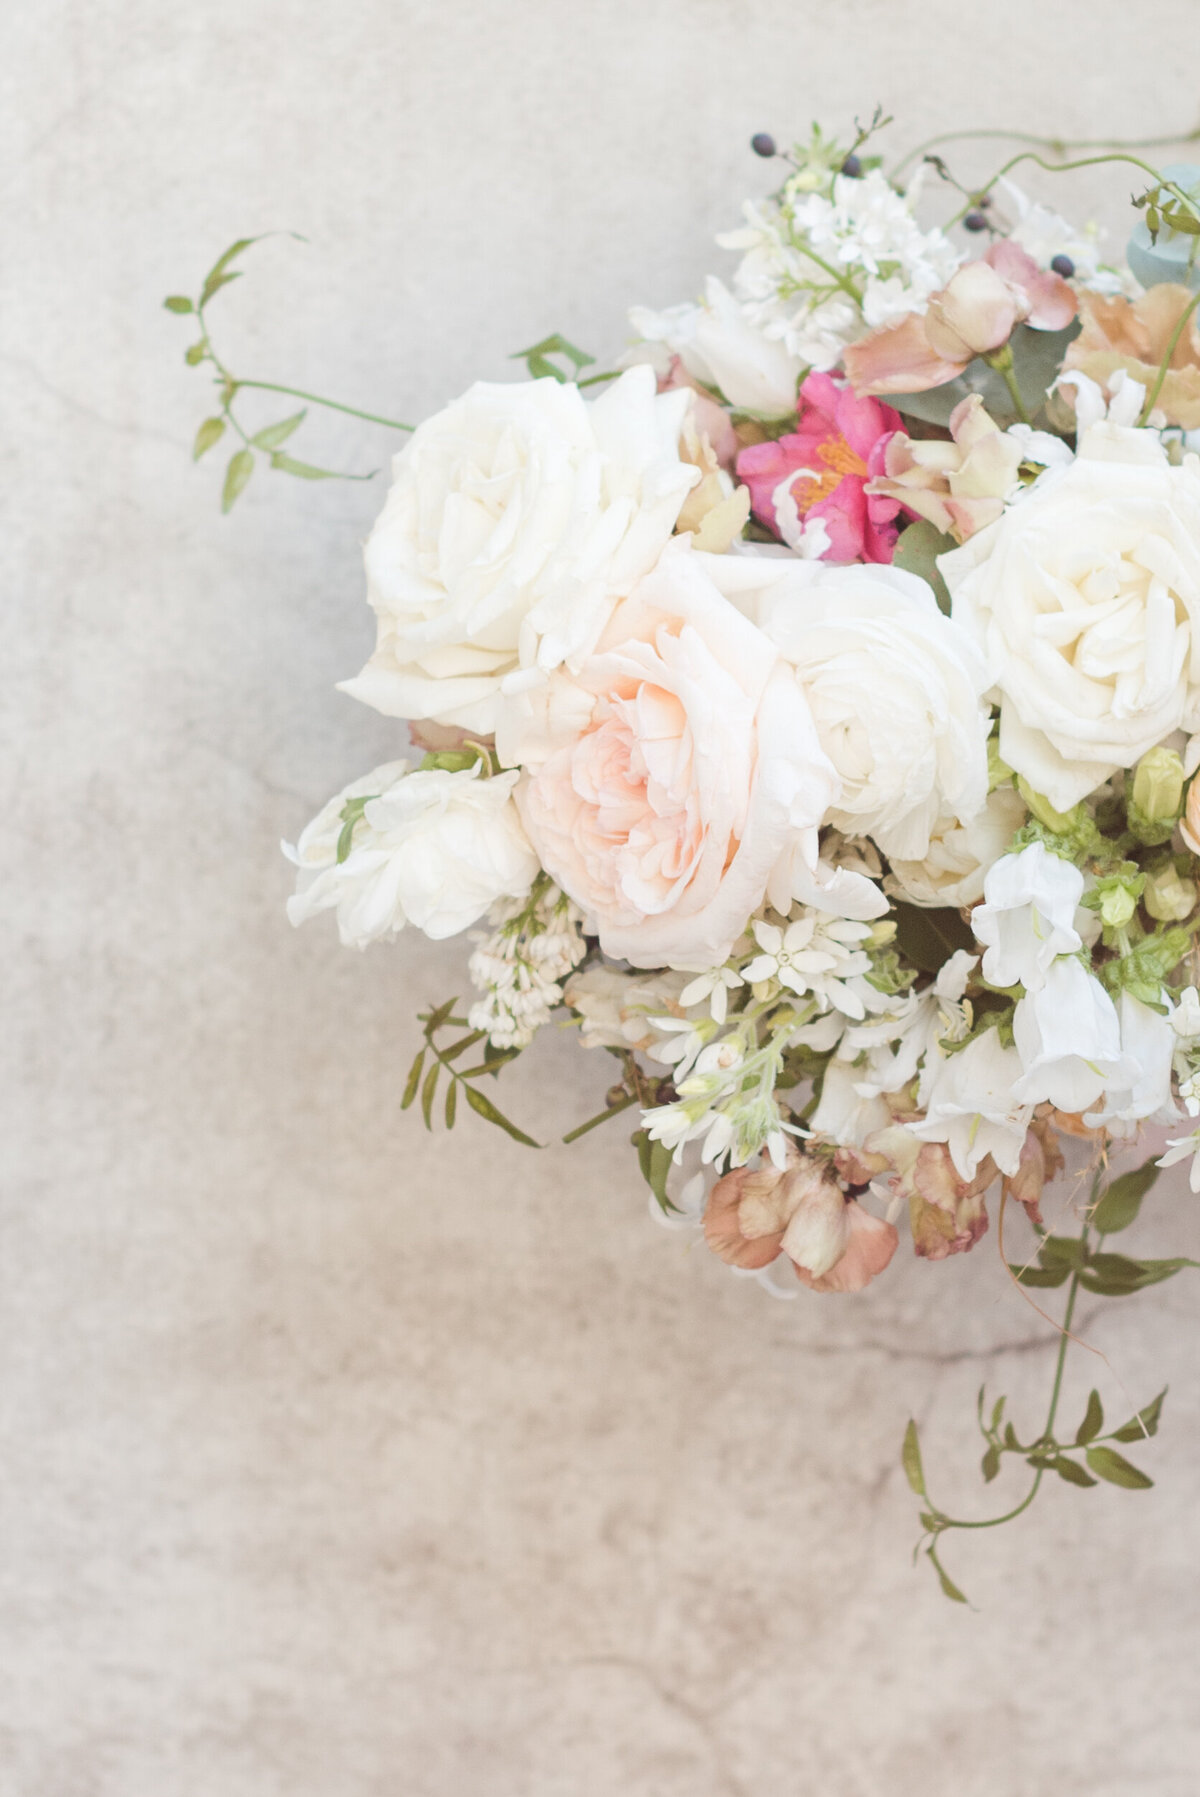 A timeless arrangement of fresh florals to create a dreamy accessory to any luxury wedding